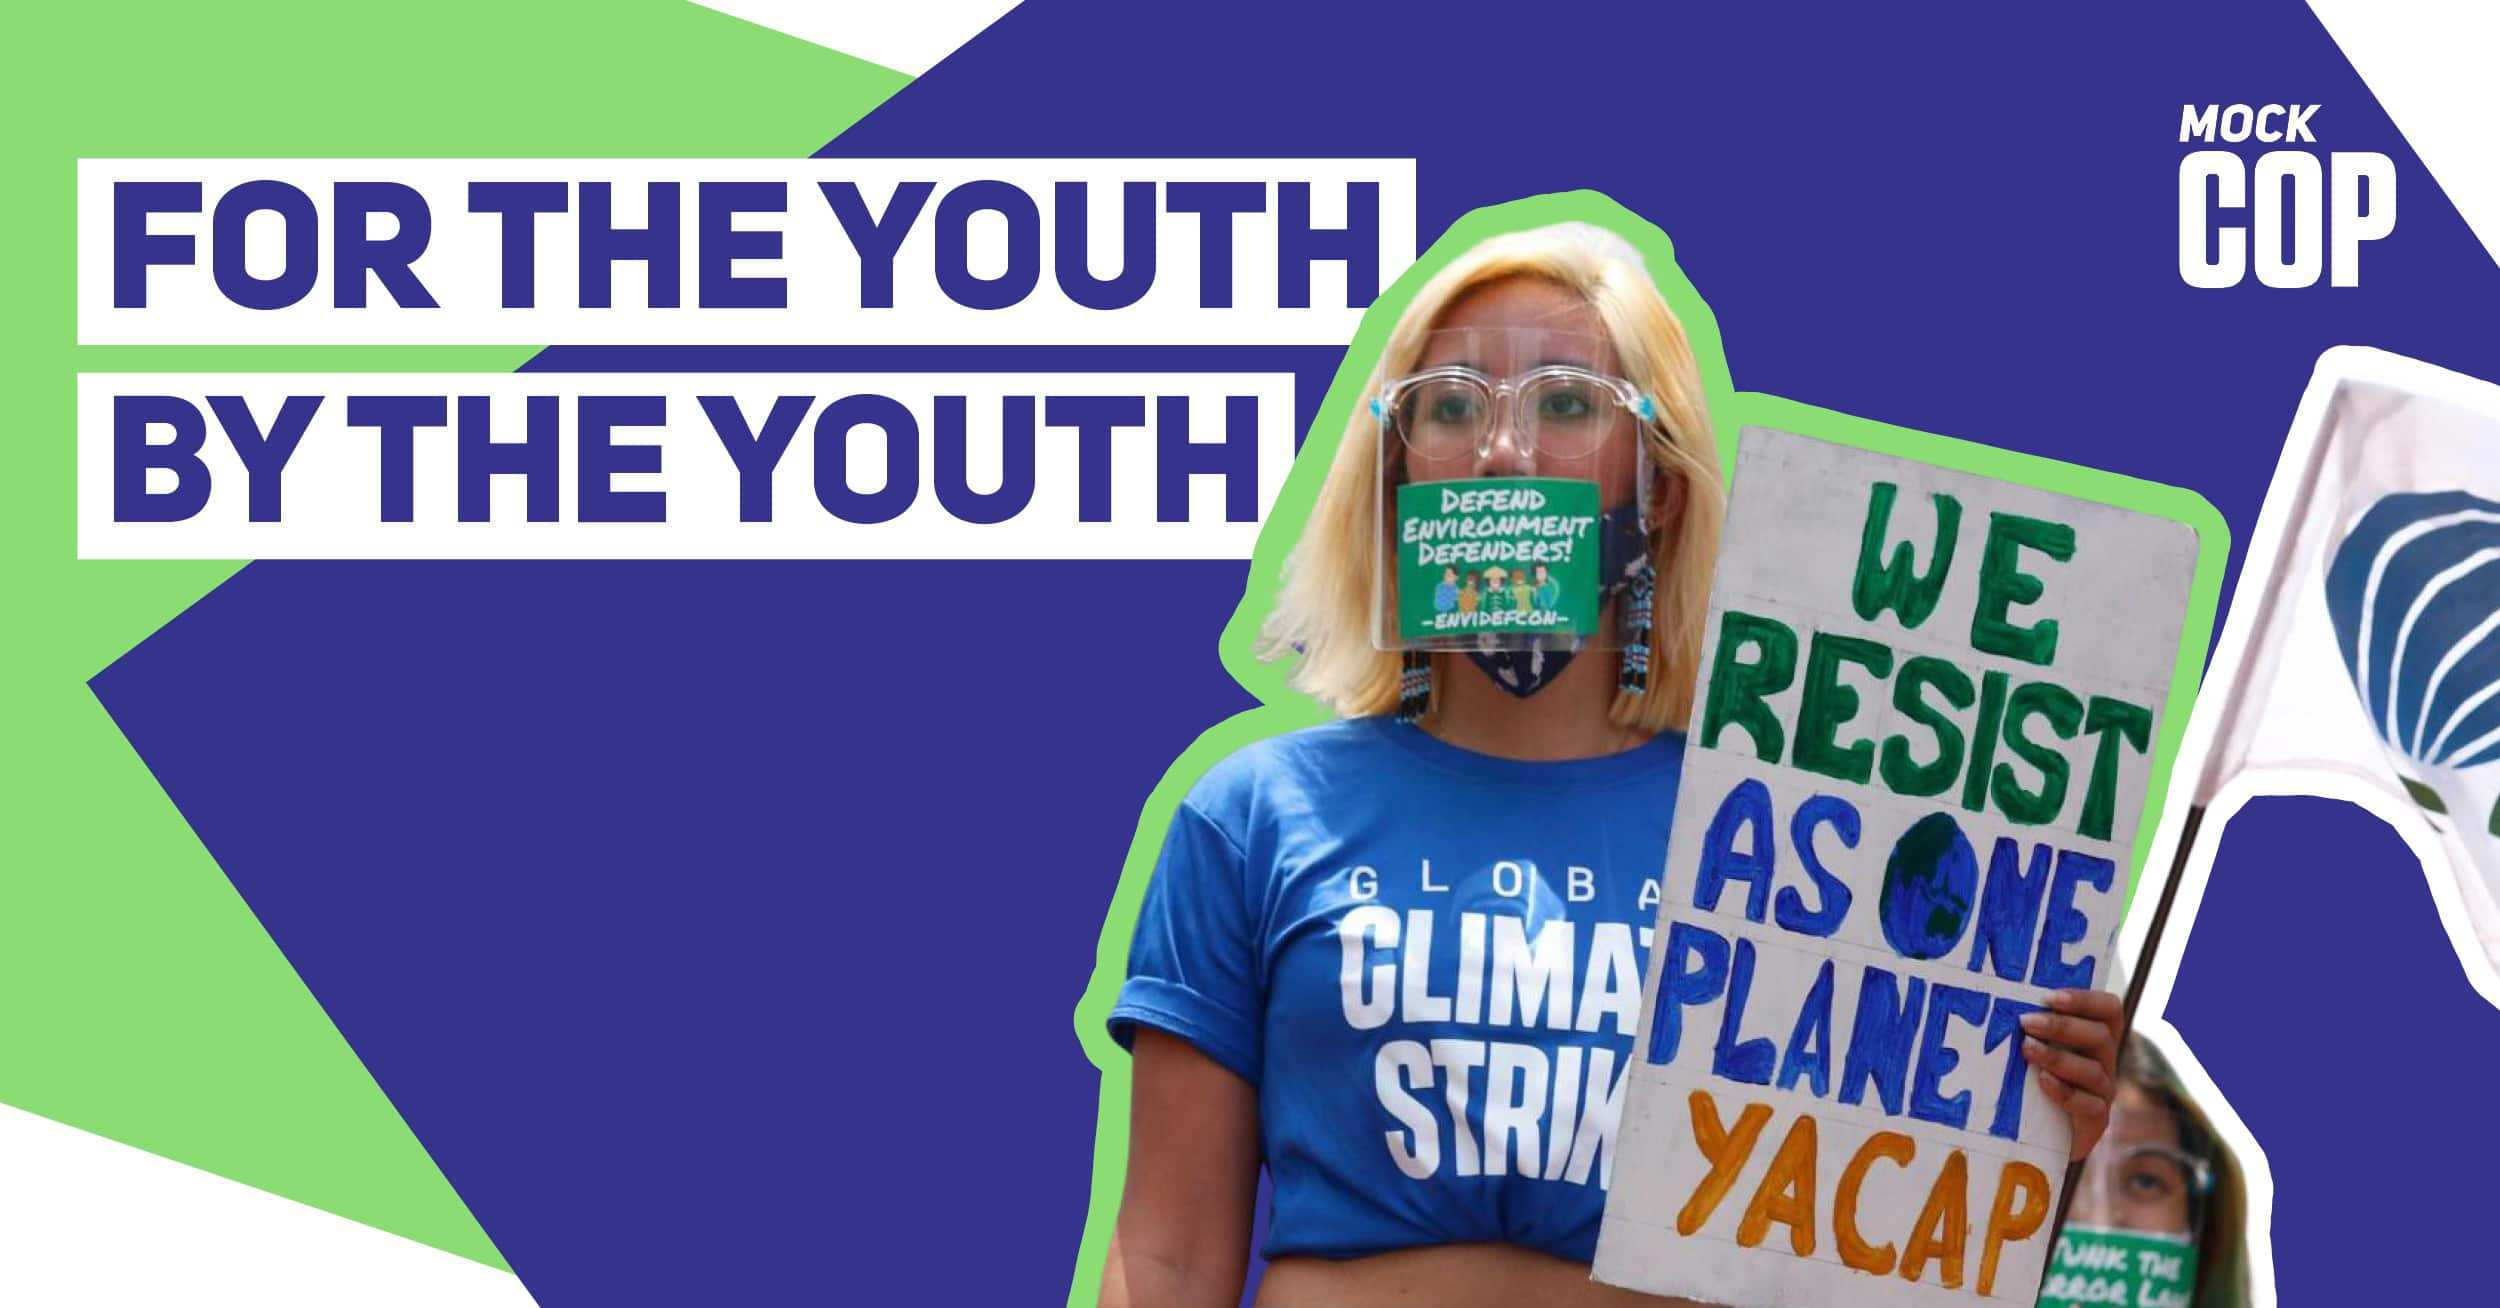 A banner reading 'FOR THE YOUTH BY THE YOUTH on a purple background, next to a cut-out photo of activist Mitzi Jonelle Tan at a climate strike.